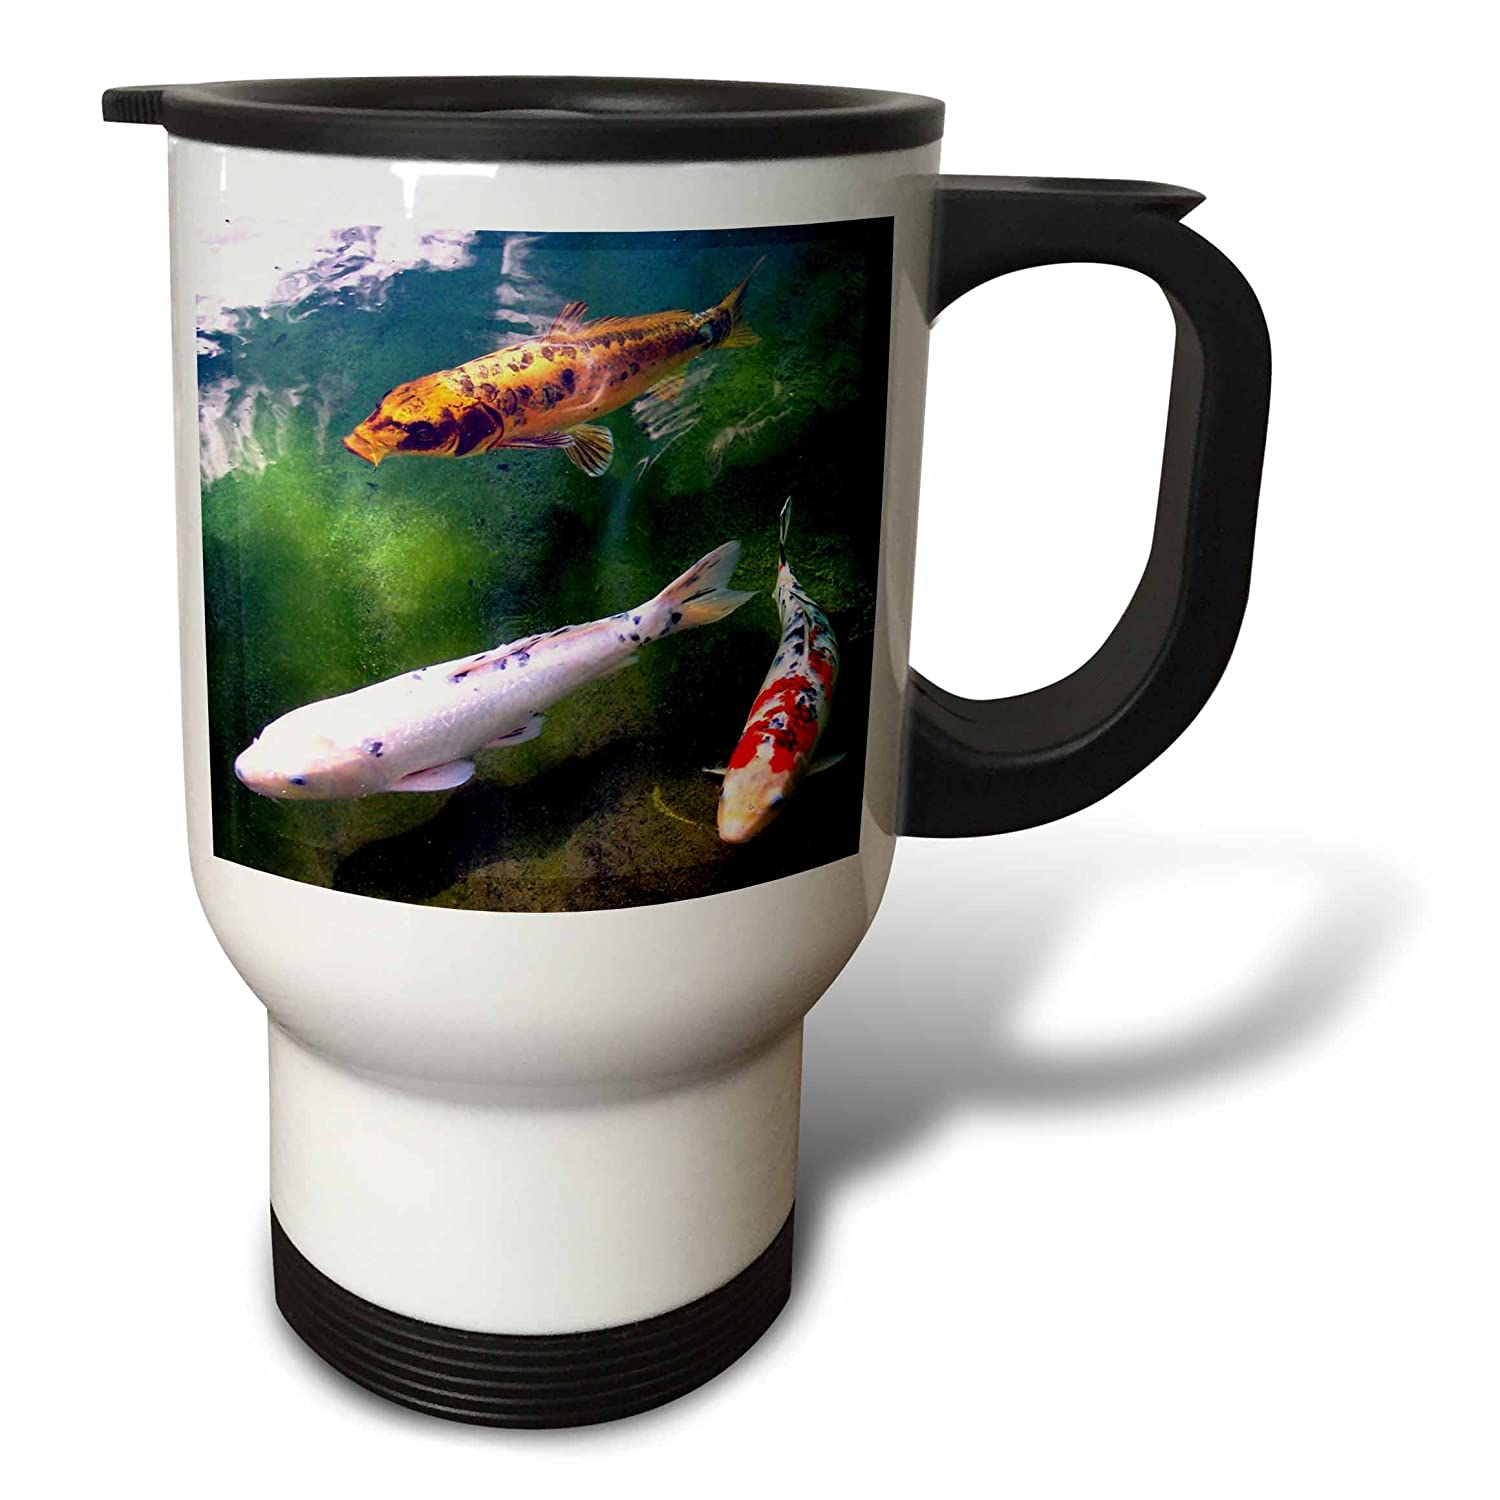 Buy 3drose Chinese Koi Carp Fish Travel Mug 14 Ounce Online At Low Prices In India Amazon In